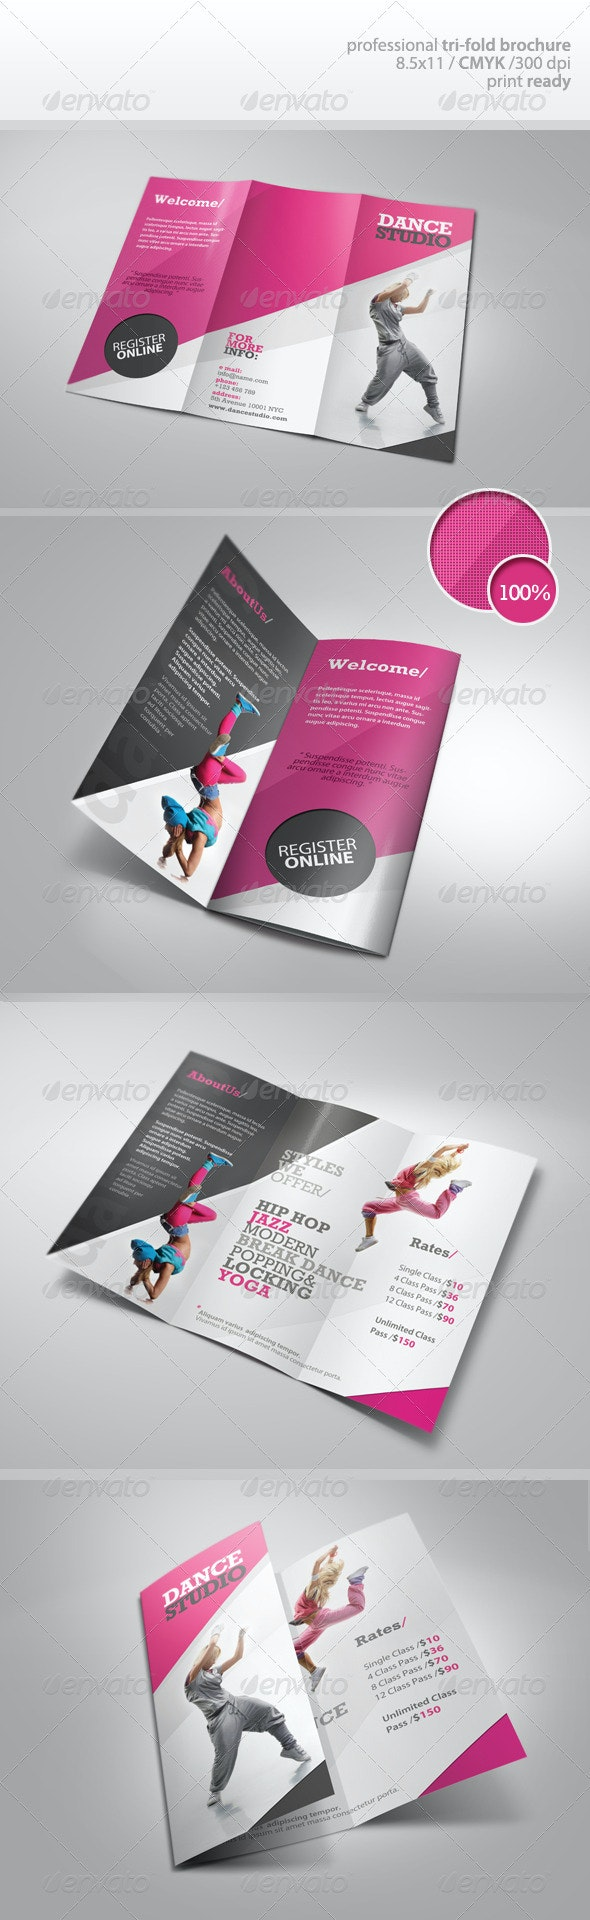 Dance Studio Brochure - Corporate Brochures